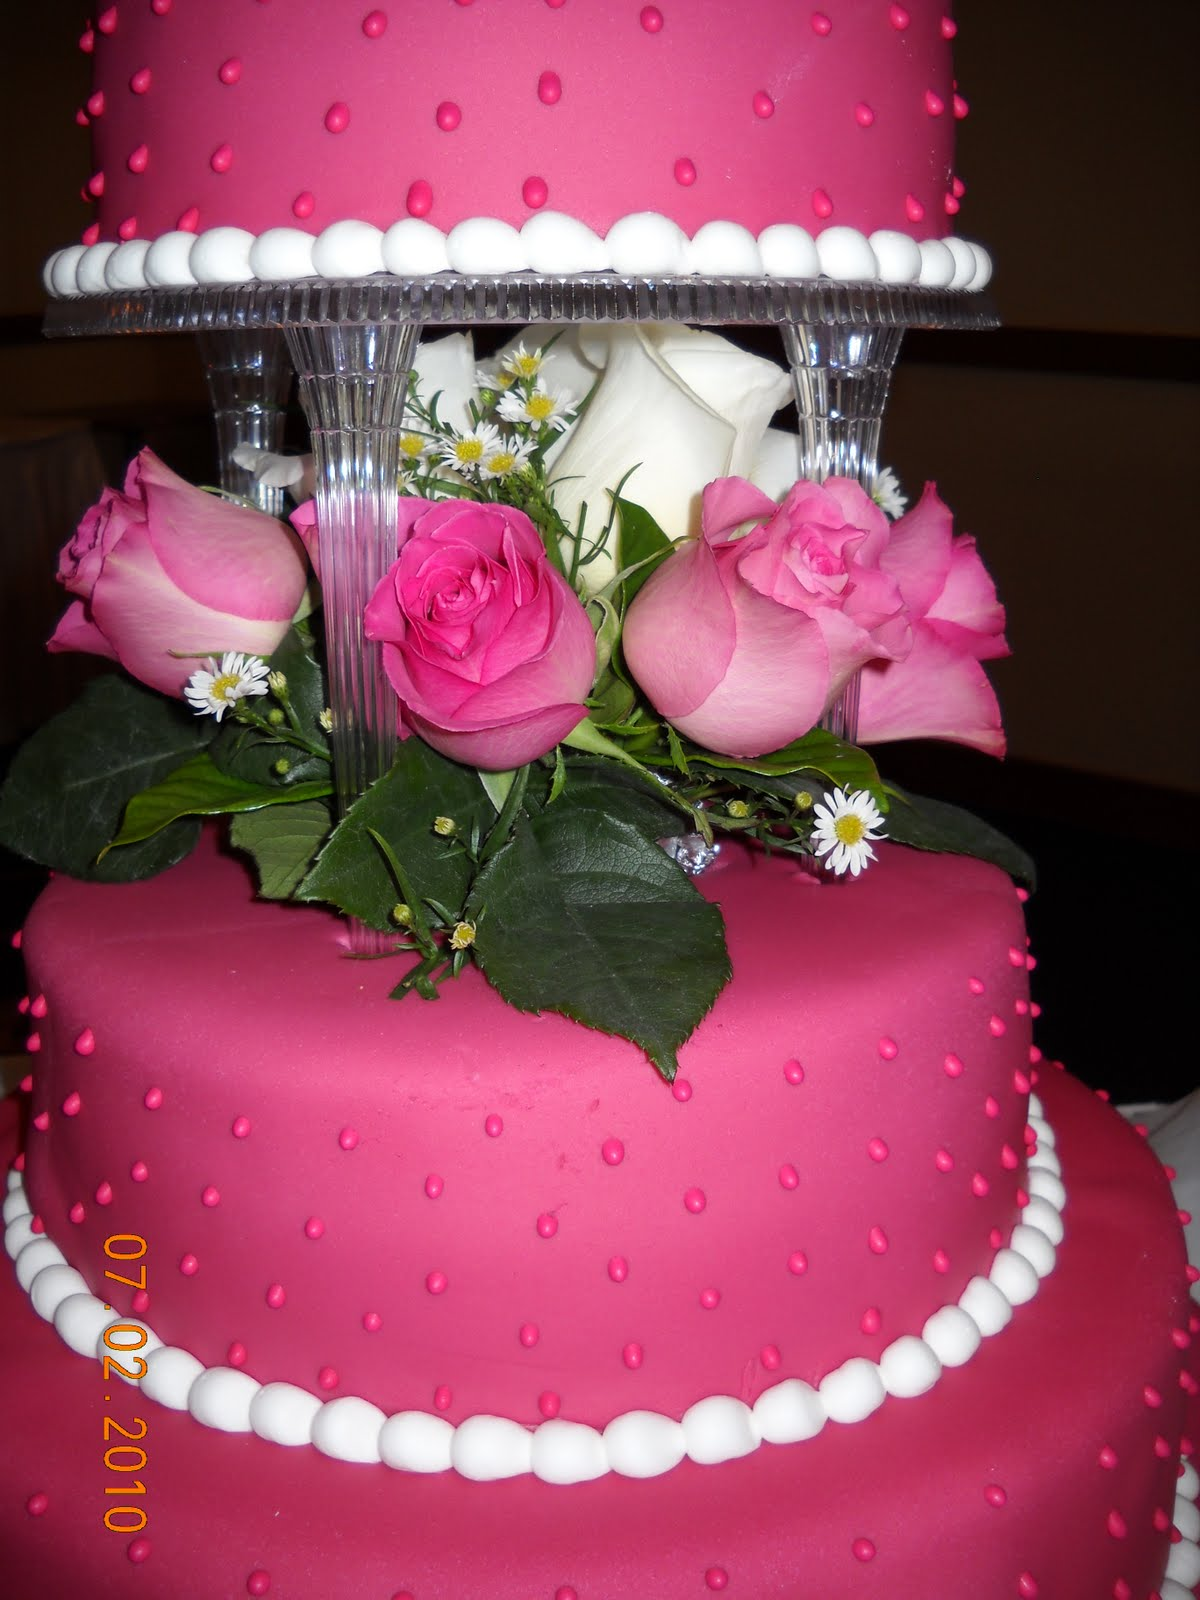 Jocelyn S Wedding Cakes And More Nicole S Debut Cake